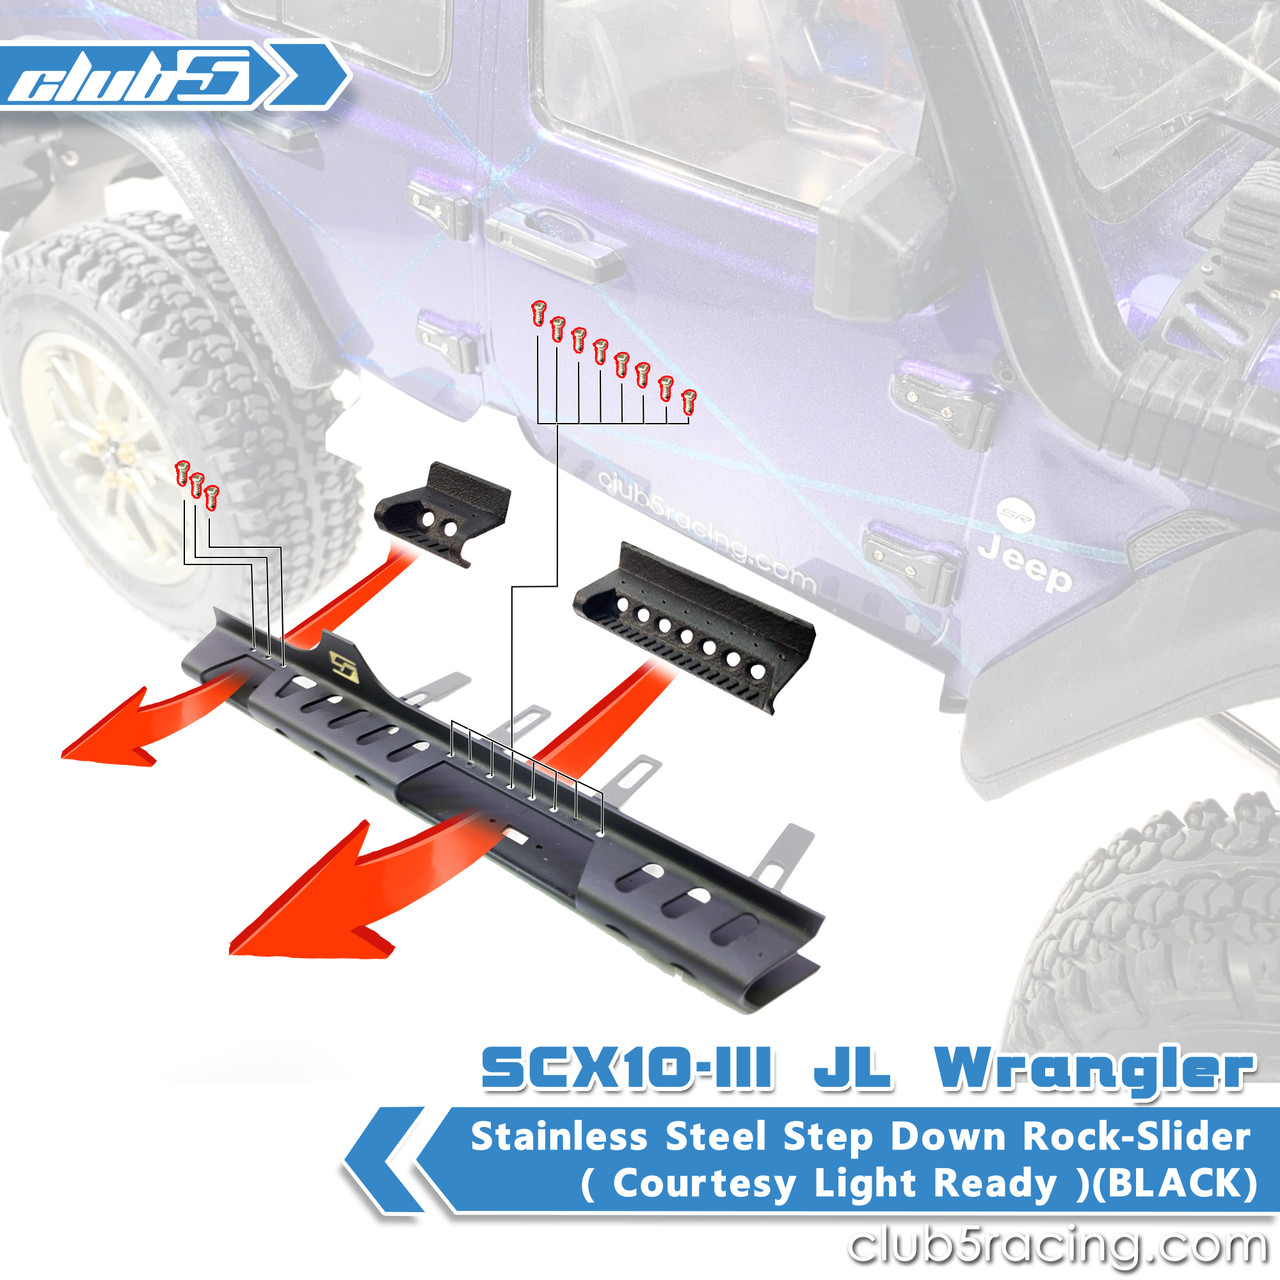 Stainless Steel Step Down Rock-Slider with Courtesy Lights for SCX10 III JL Wrangler